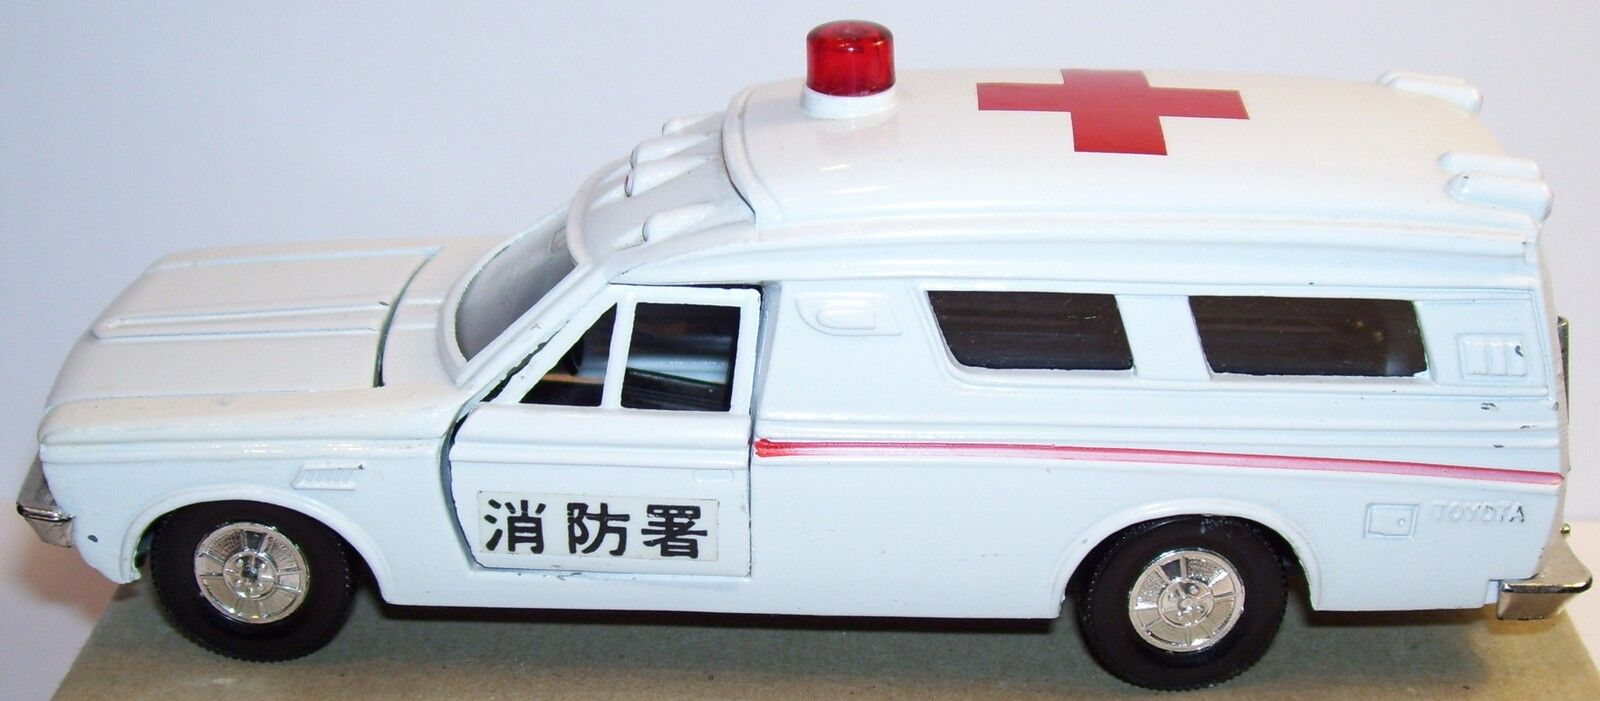 RARE DIAPET YONEZAWA TOYS TOYOTA TOYOPET CROWN AMBULANCE REF 144 MADE JAPAN 1971